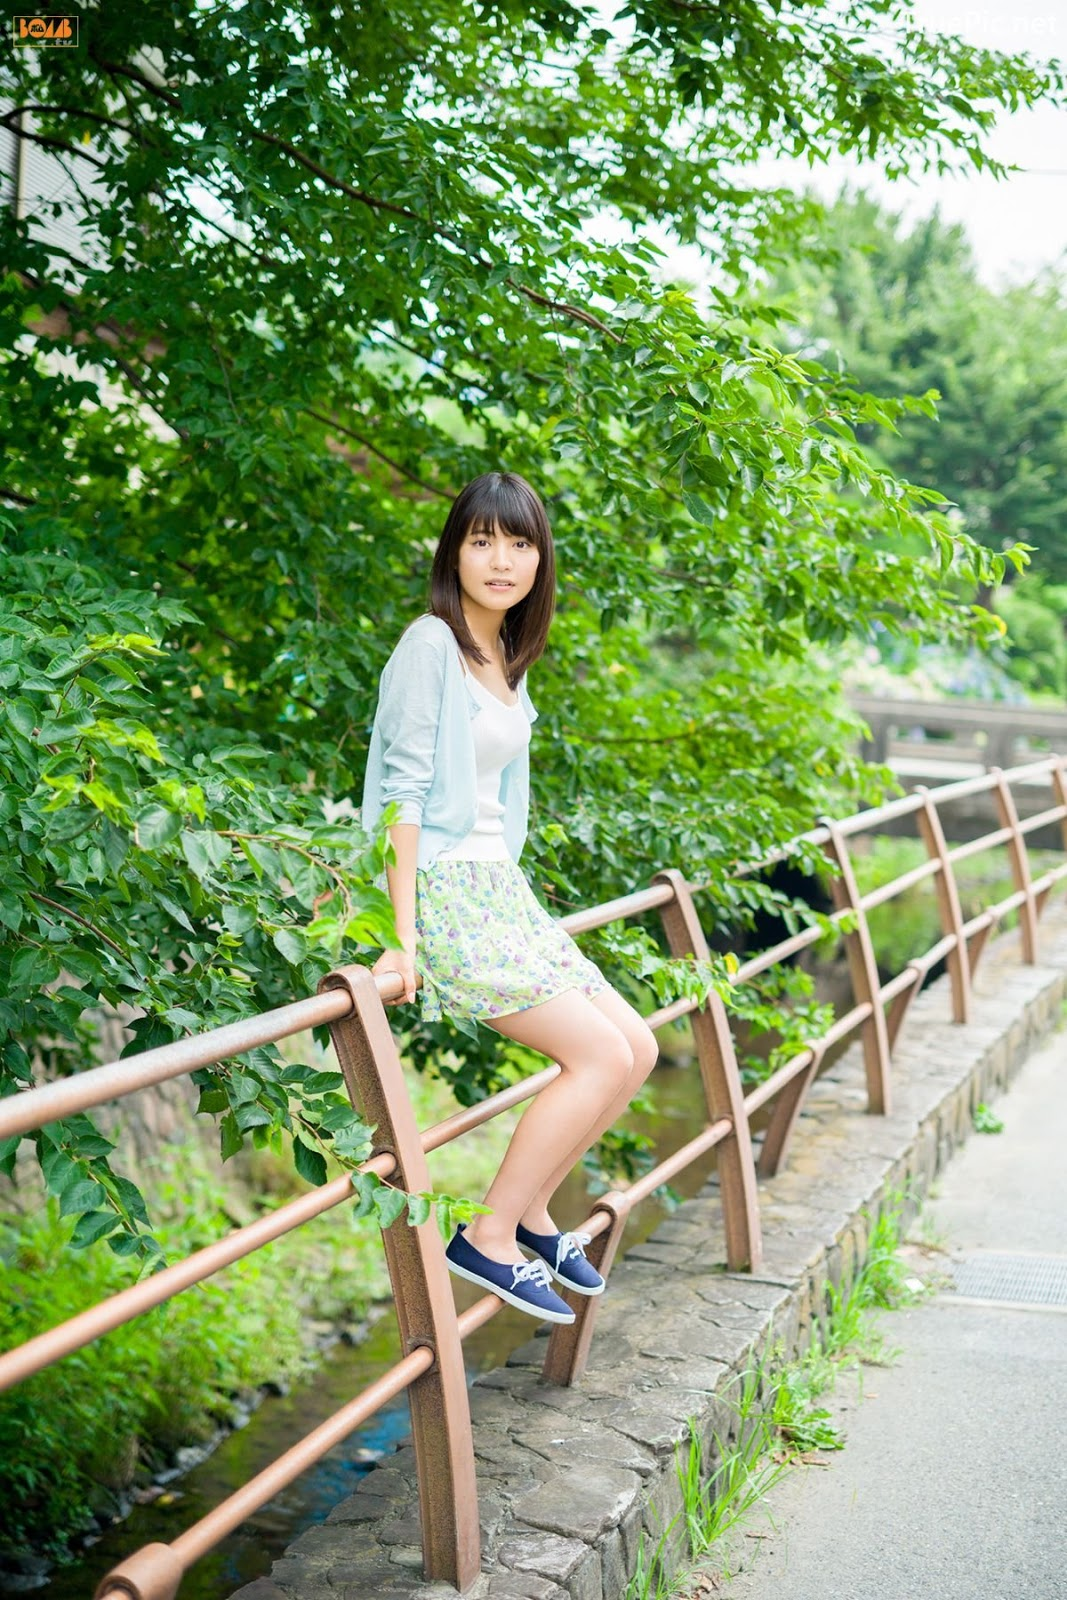 Image Japanese Model - Arisa Matsunaga - GRAVURE Channel Photo Jacket - TruePic.net - Picture-8